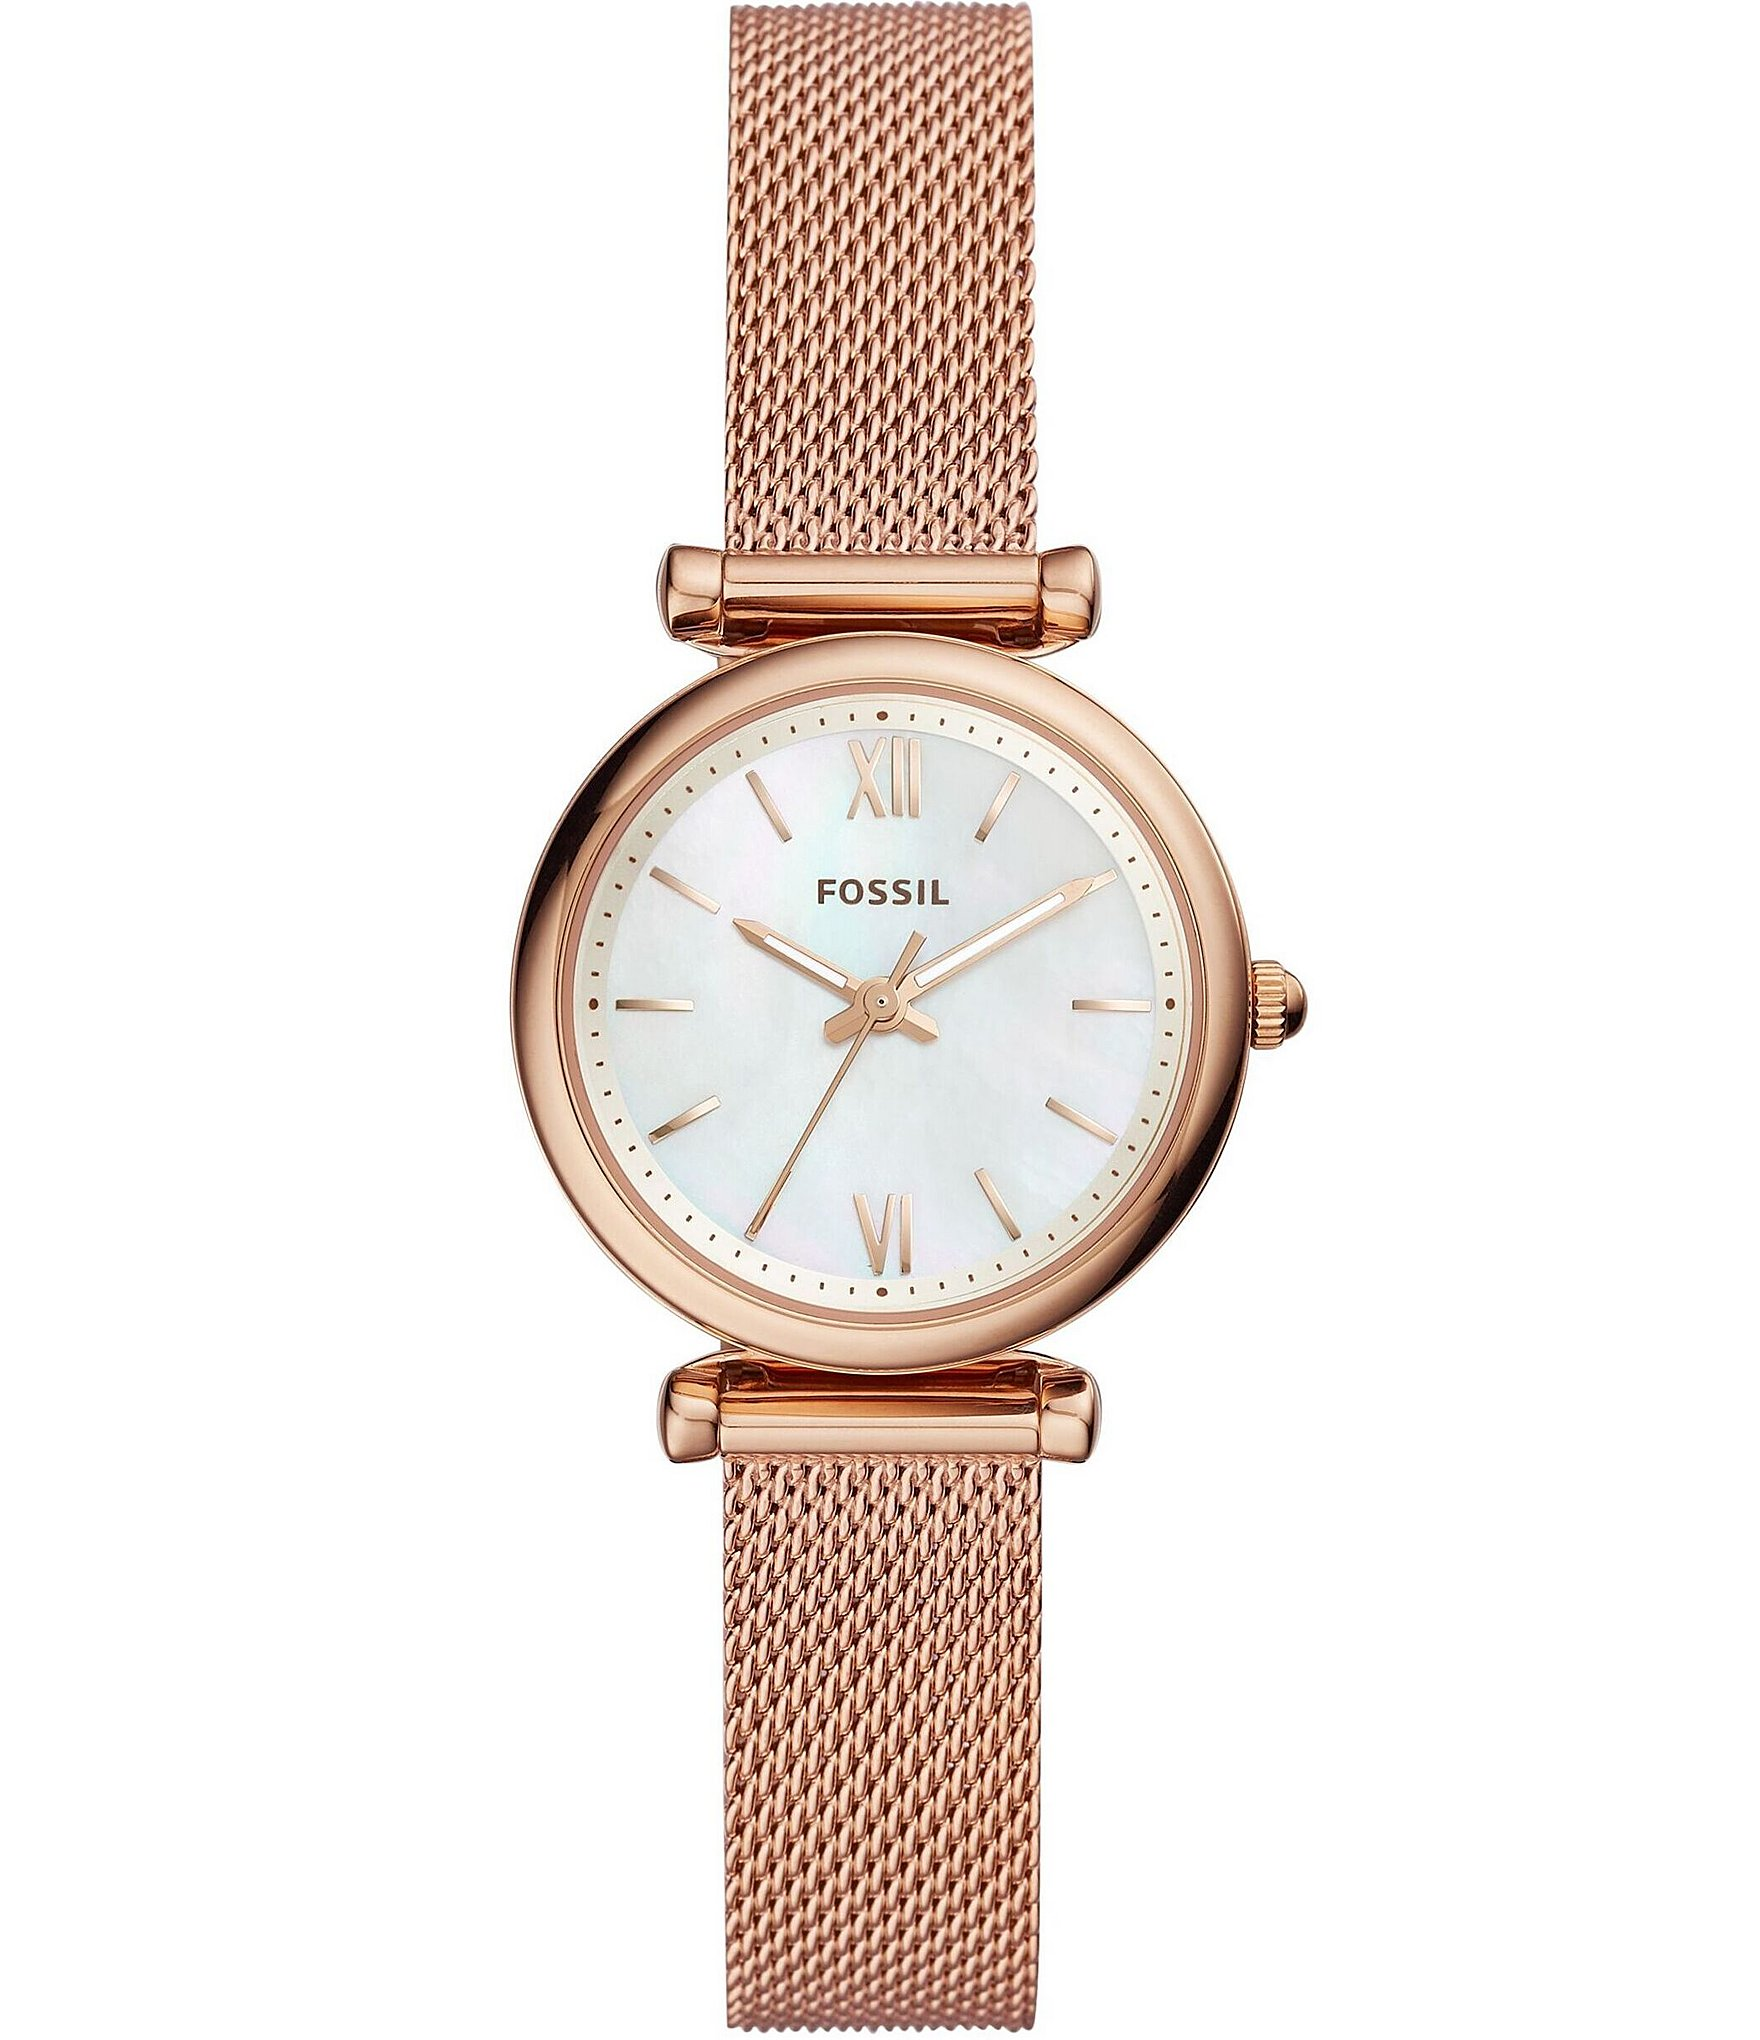 Fossil Carlie Three Hand Rose Gold Tone Stainless Steel With Mesh Bracelet Watch Dillard S